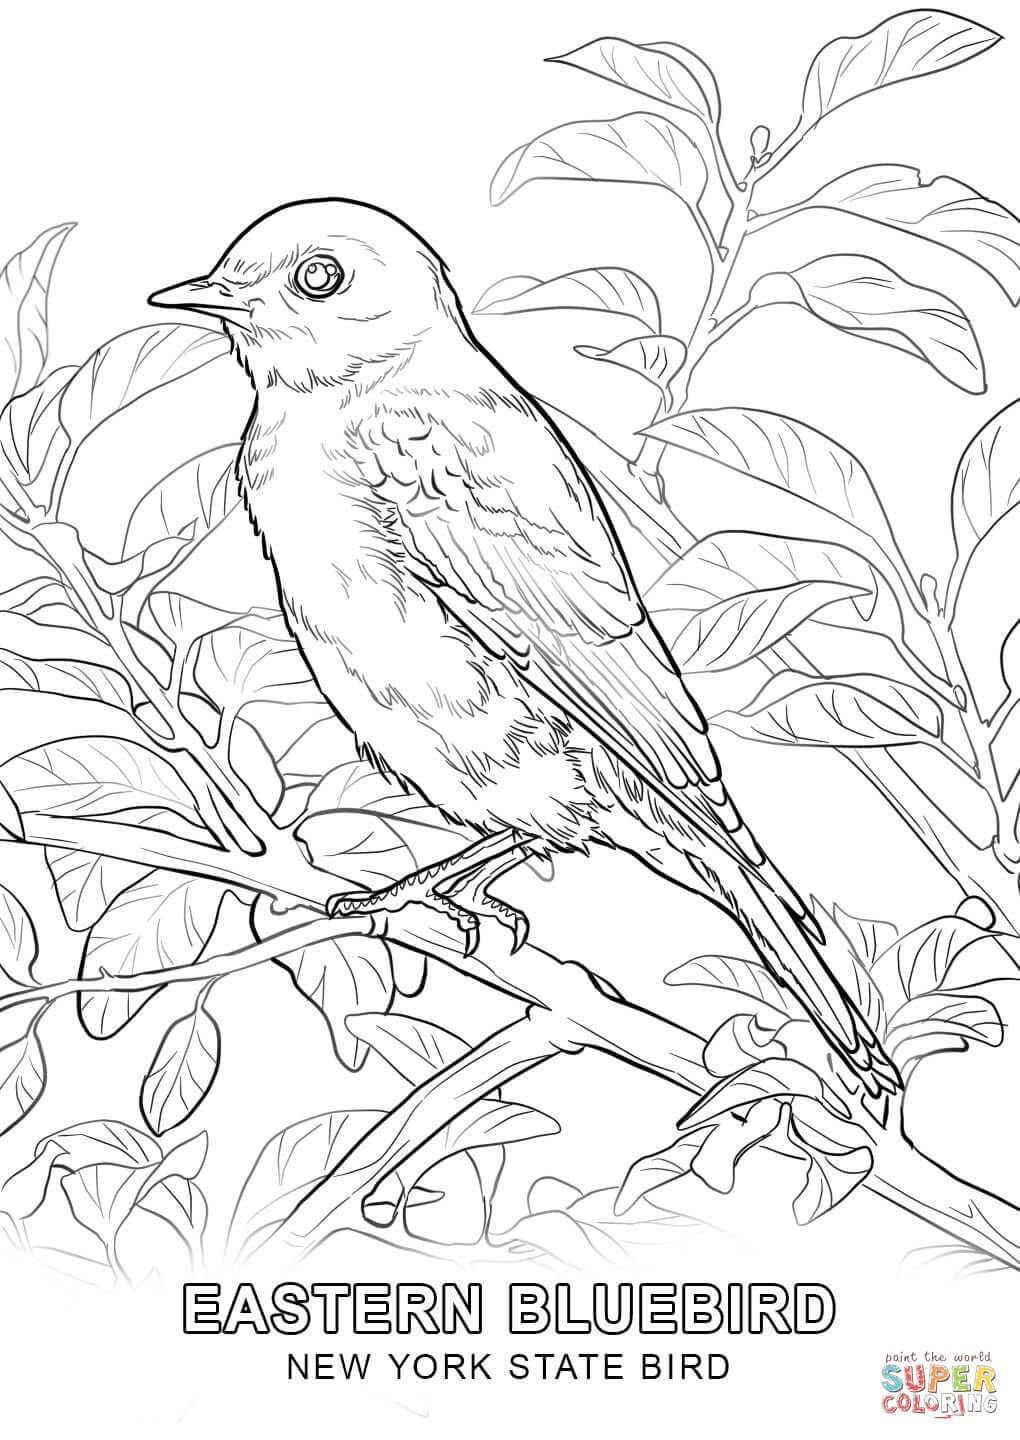 New York State Bird Coloring Page Jpg 1020 1440 Bird Coloring